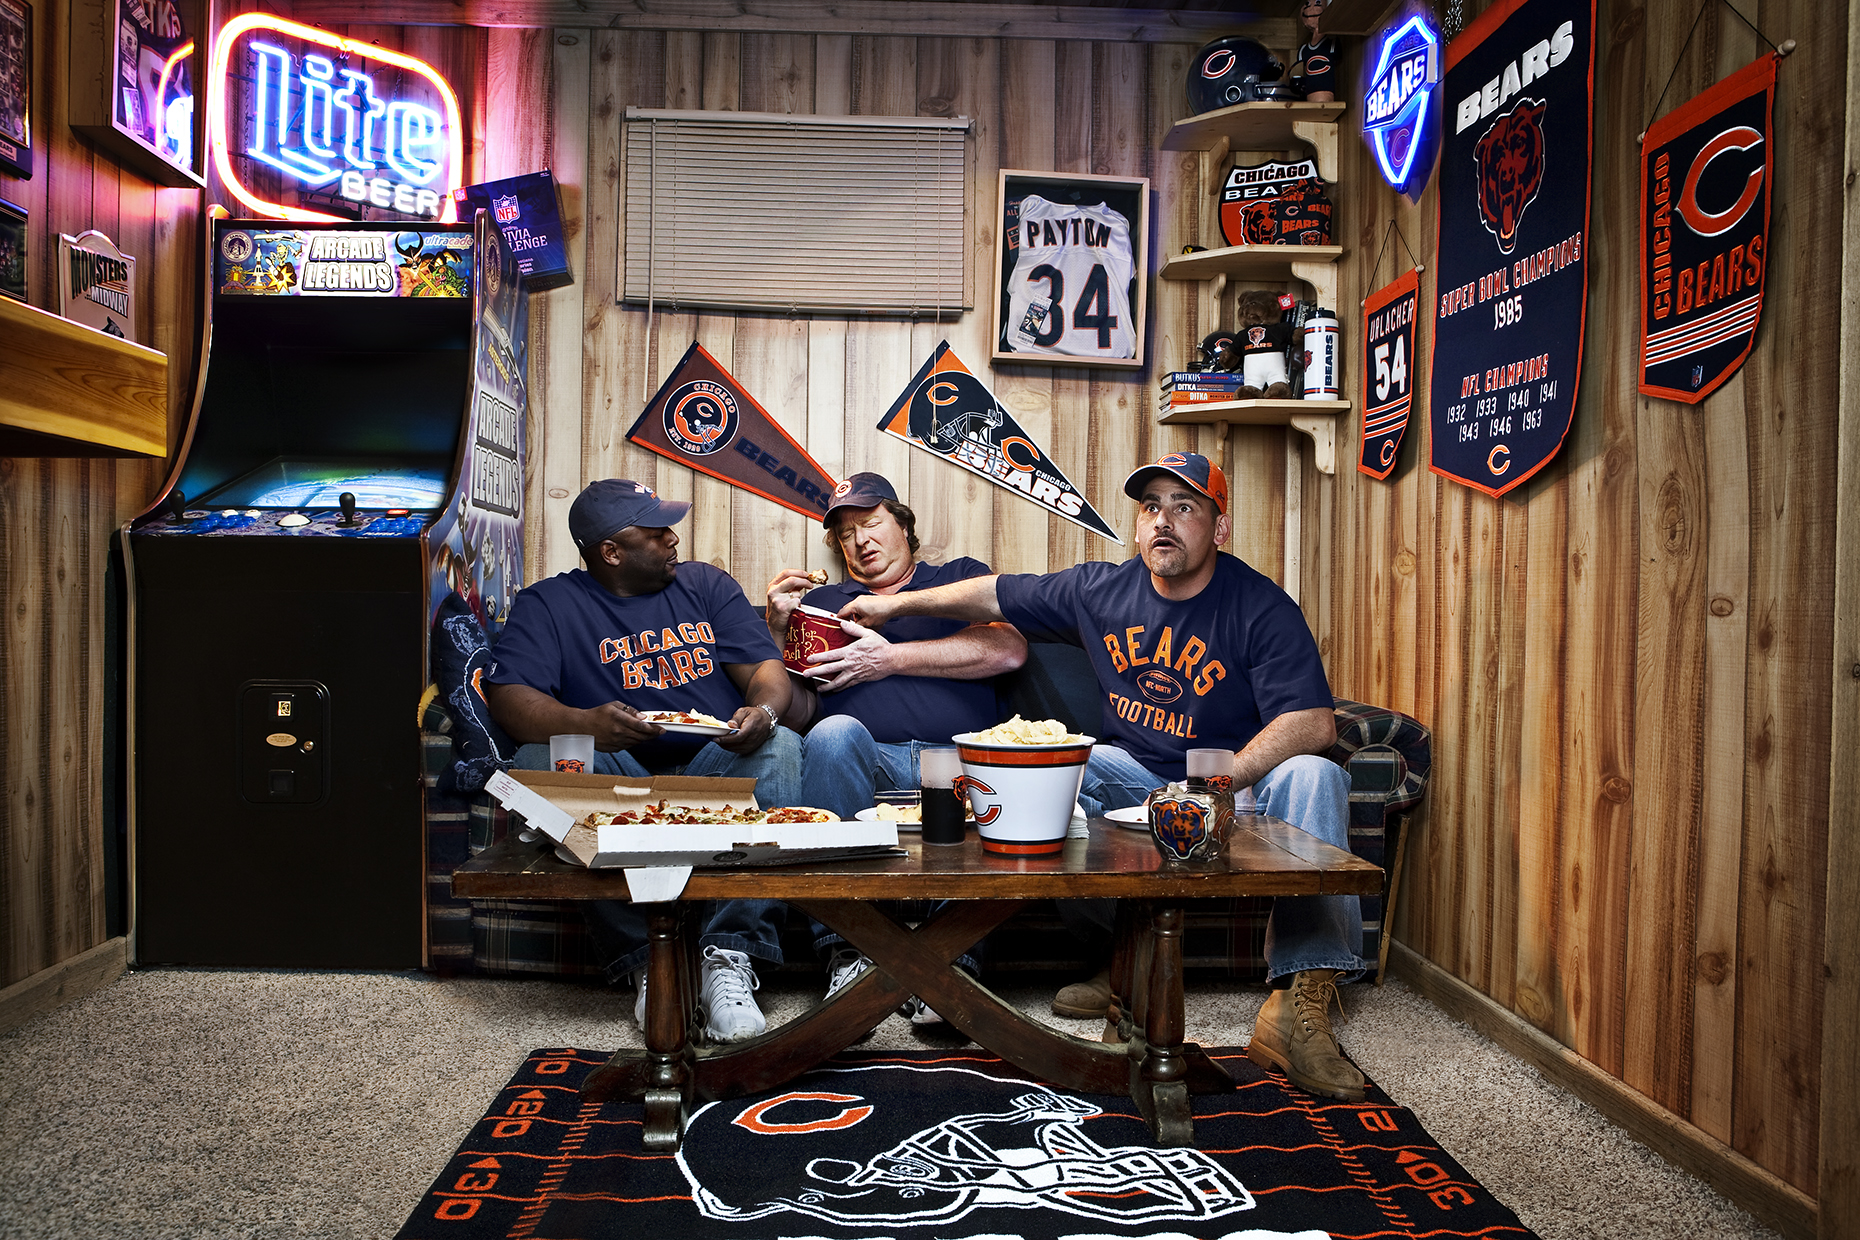 Photo by Taylor Castle for the Chicago Bears